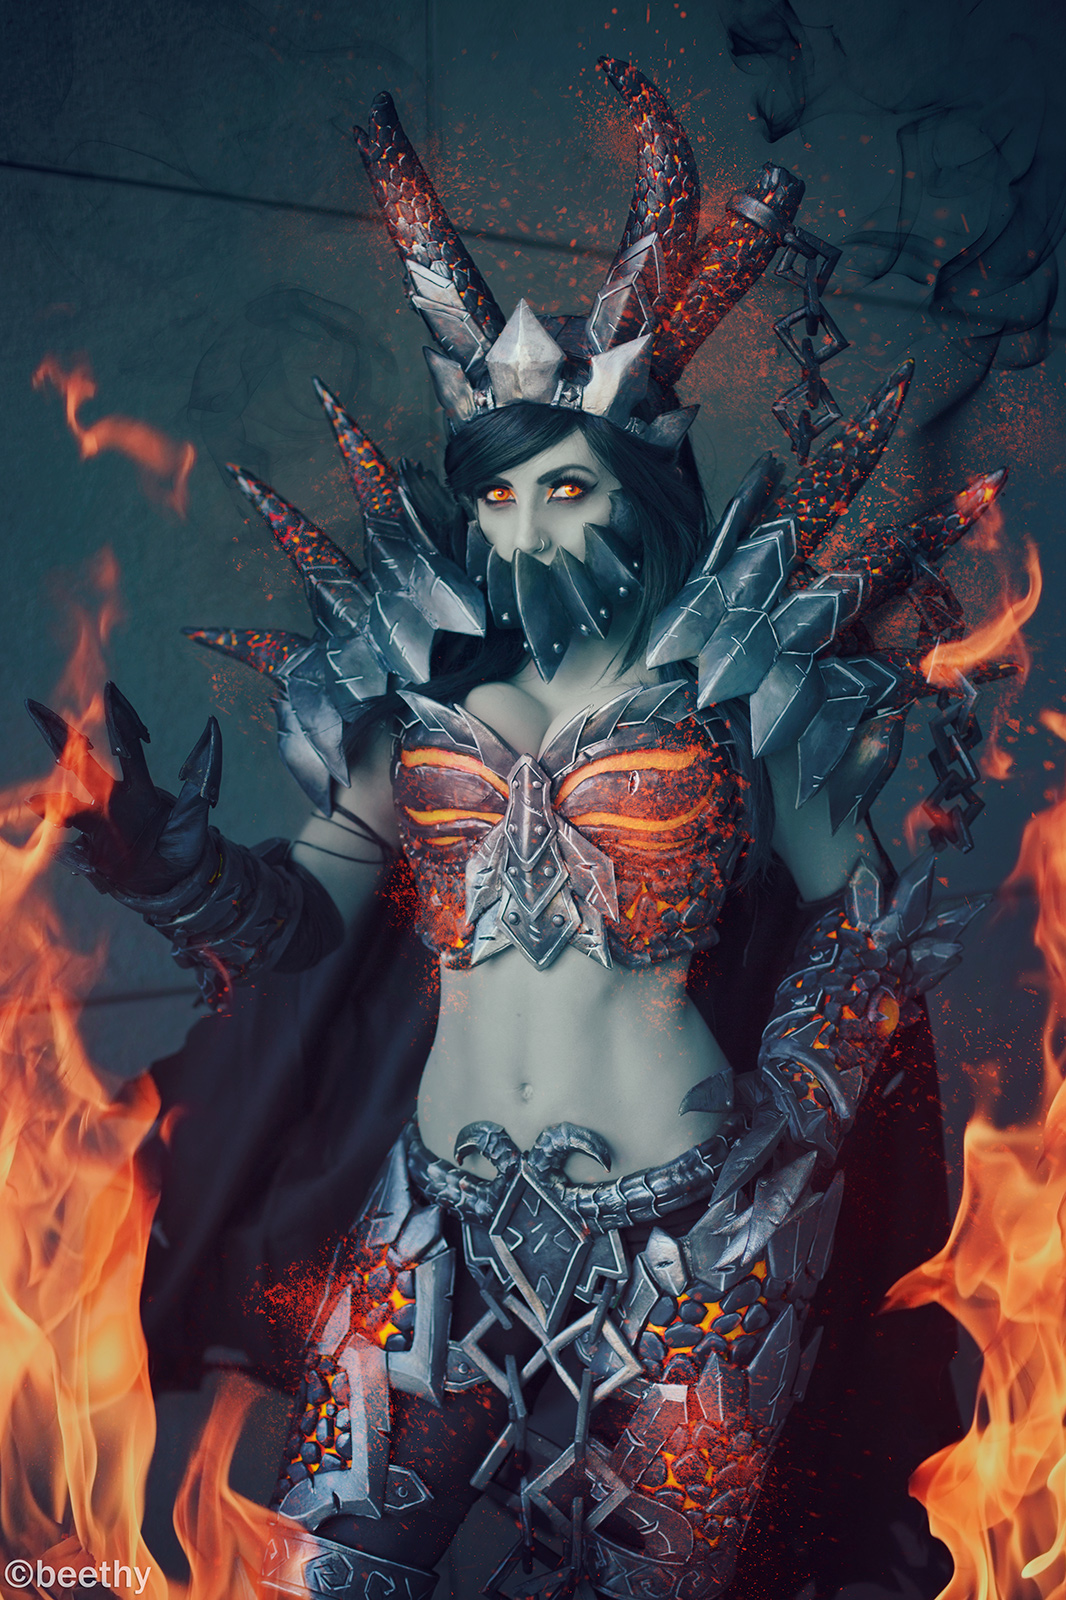 World of Warcraft - Deathwing by beethy